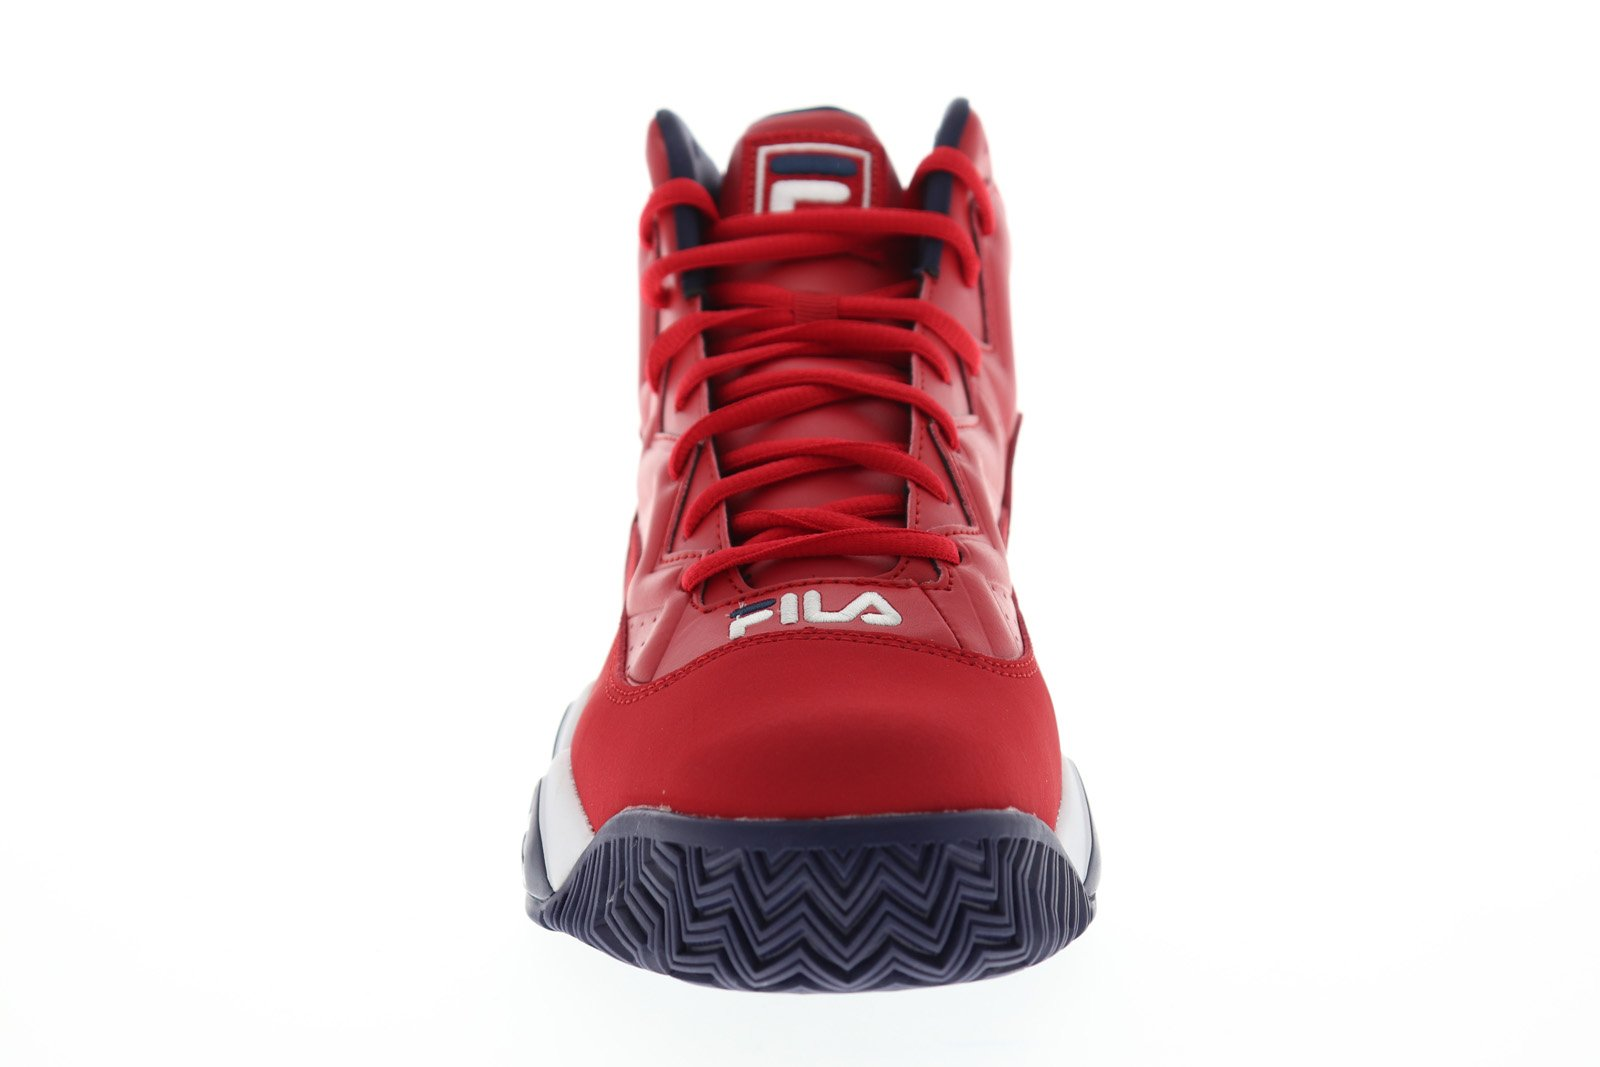 Fila MB 1BM00510 616 Mens Red High Top Lace Up Athletic Gym